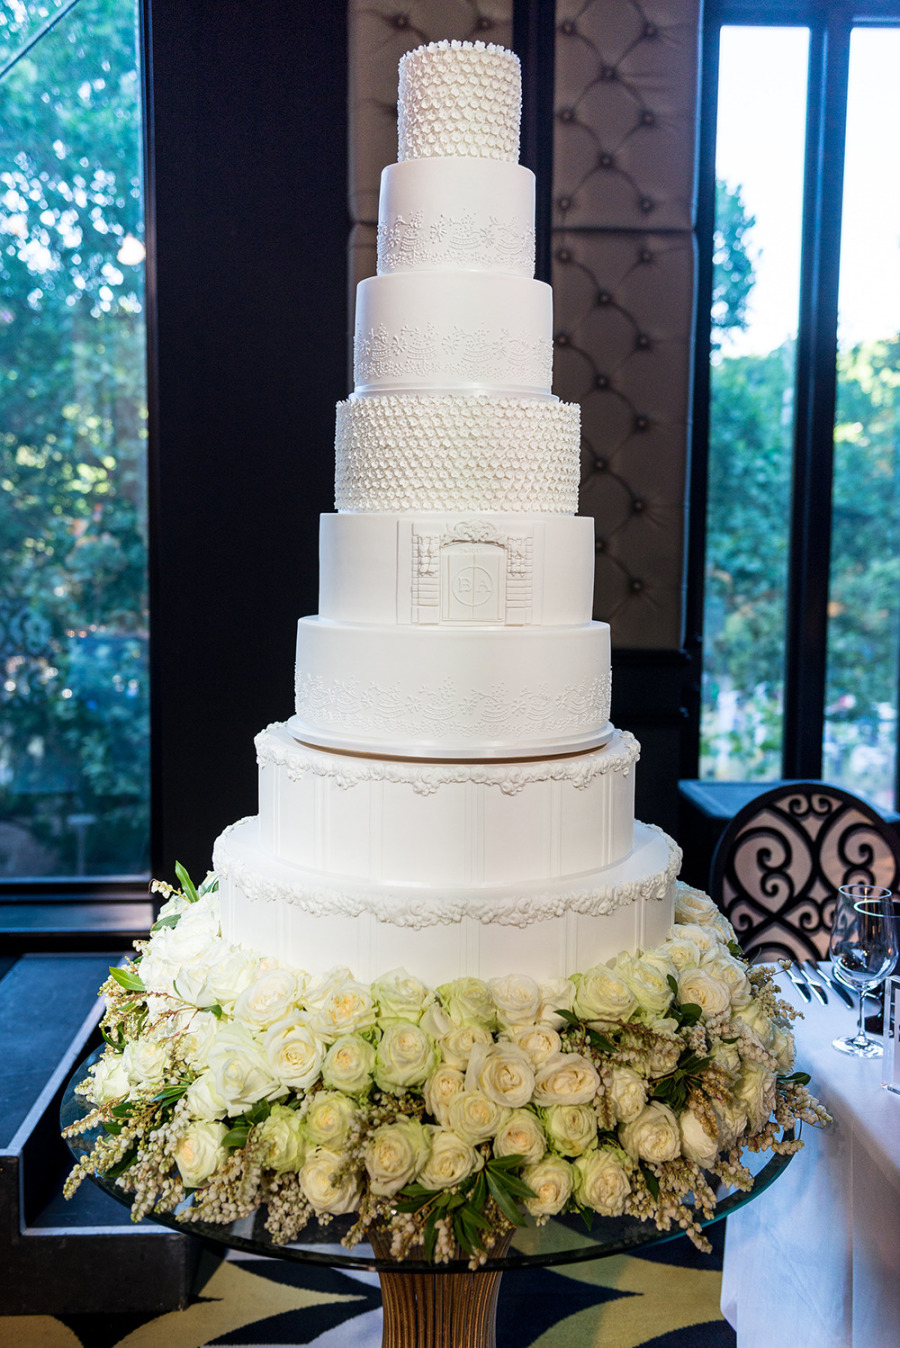 awe inspiring wedding cakes ideas to to blow your mind modwedding. Black Bedroom Furniture Sets. Home Design Ideas